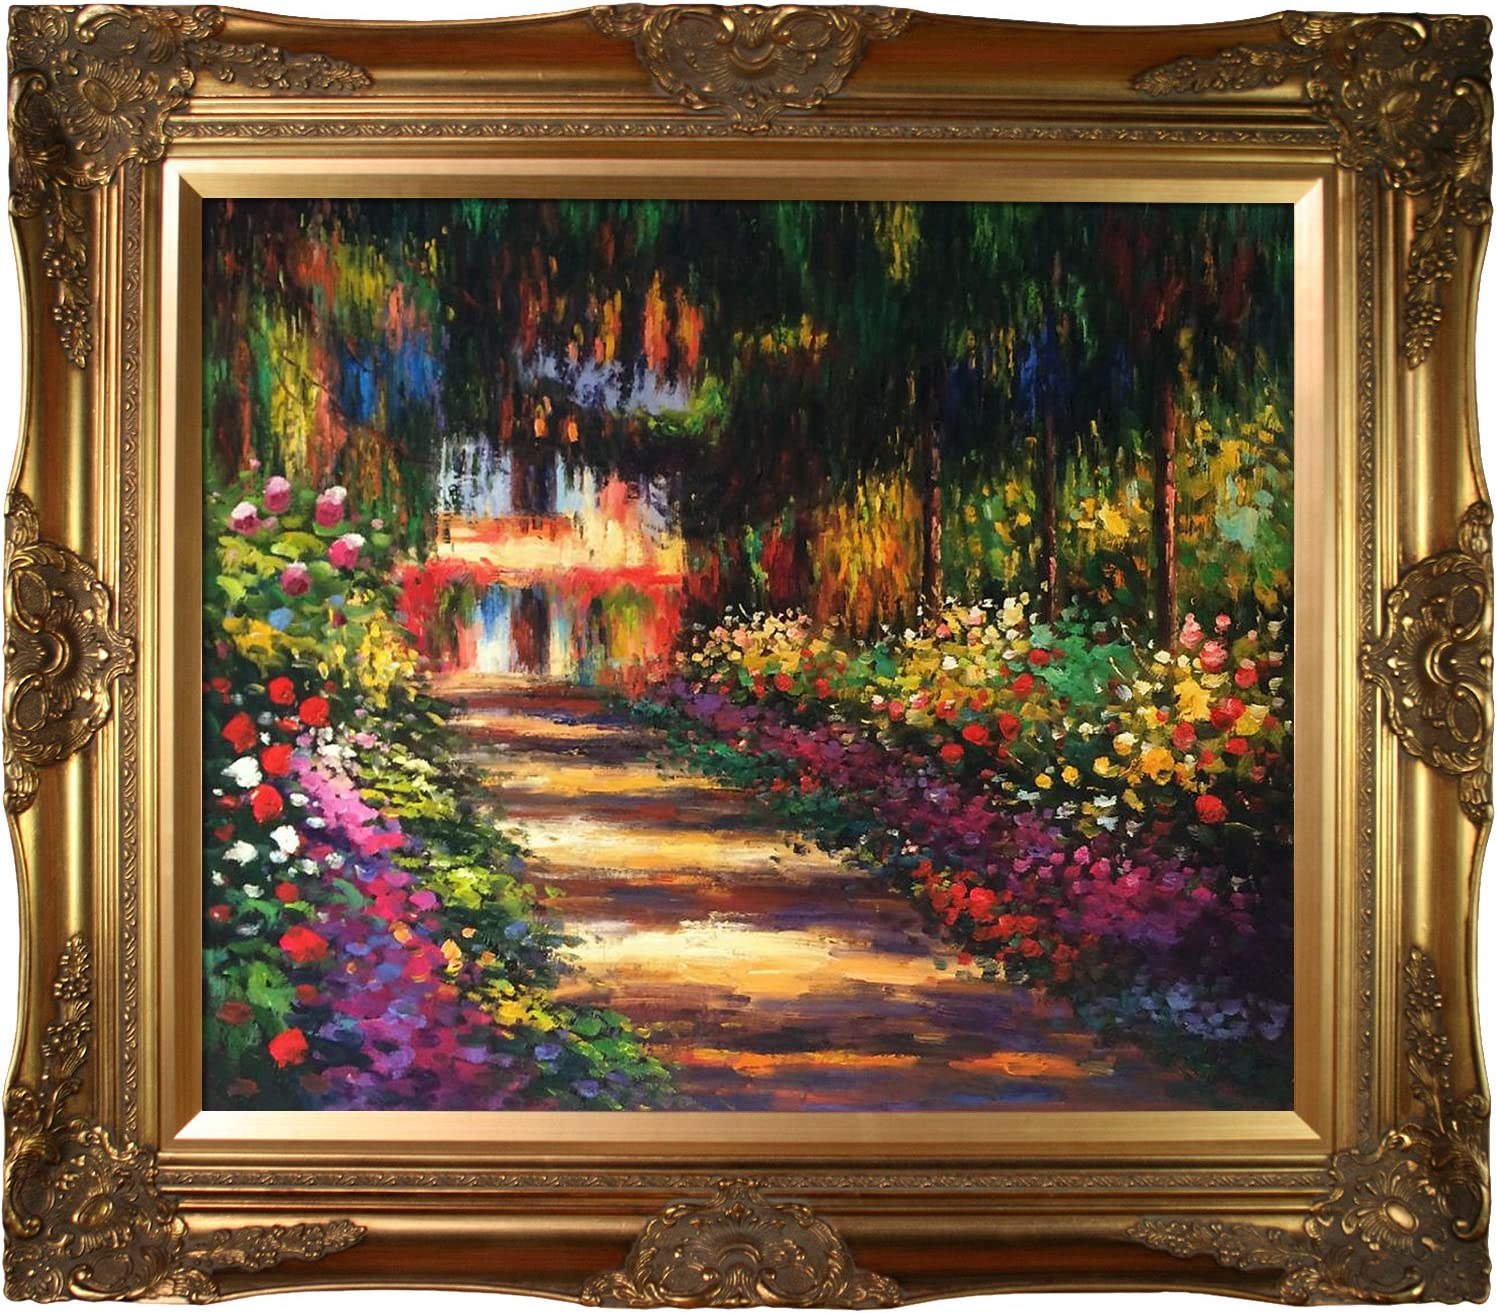 "overstockArt Pathway Garden at at Giverny by Monet with Victorian Gold Frame, 32"" x 28"", Multi-Color"